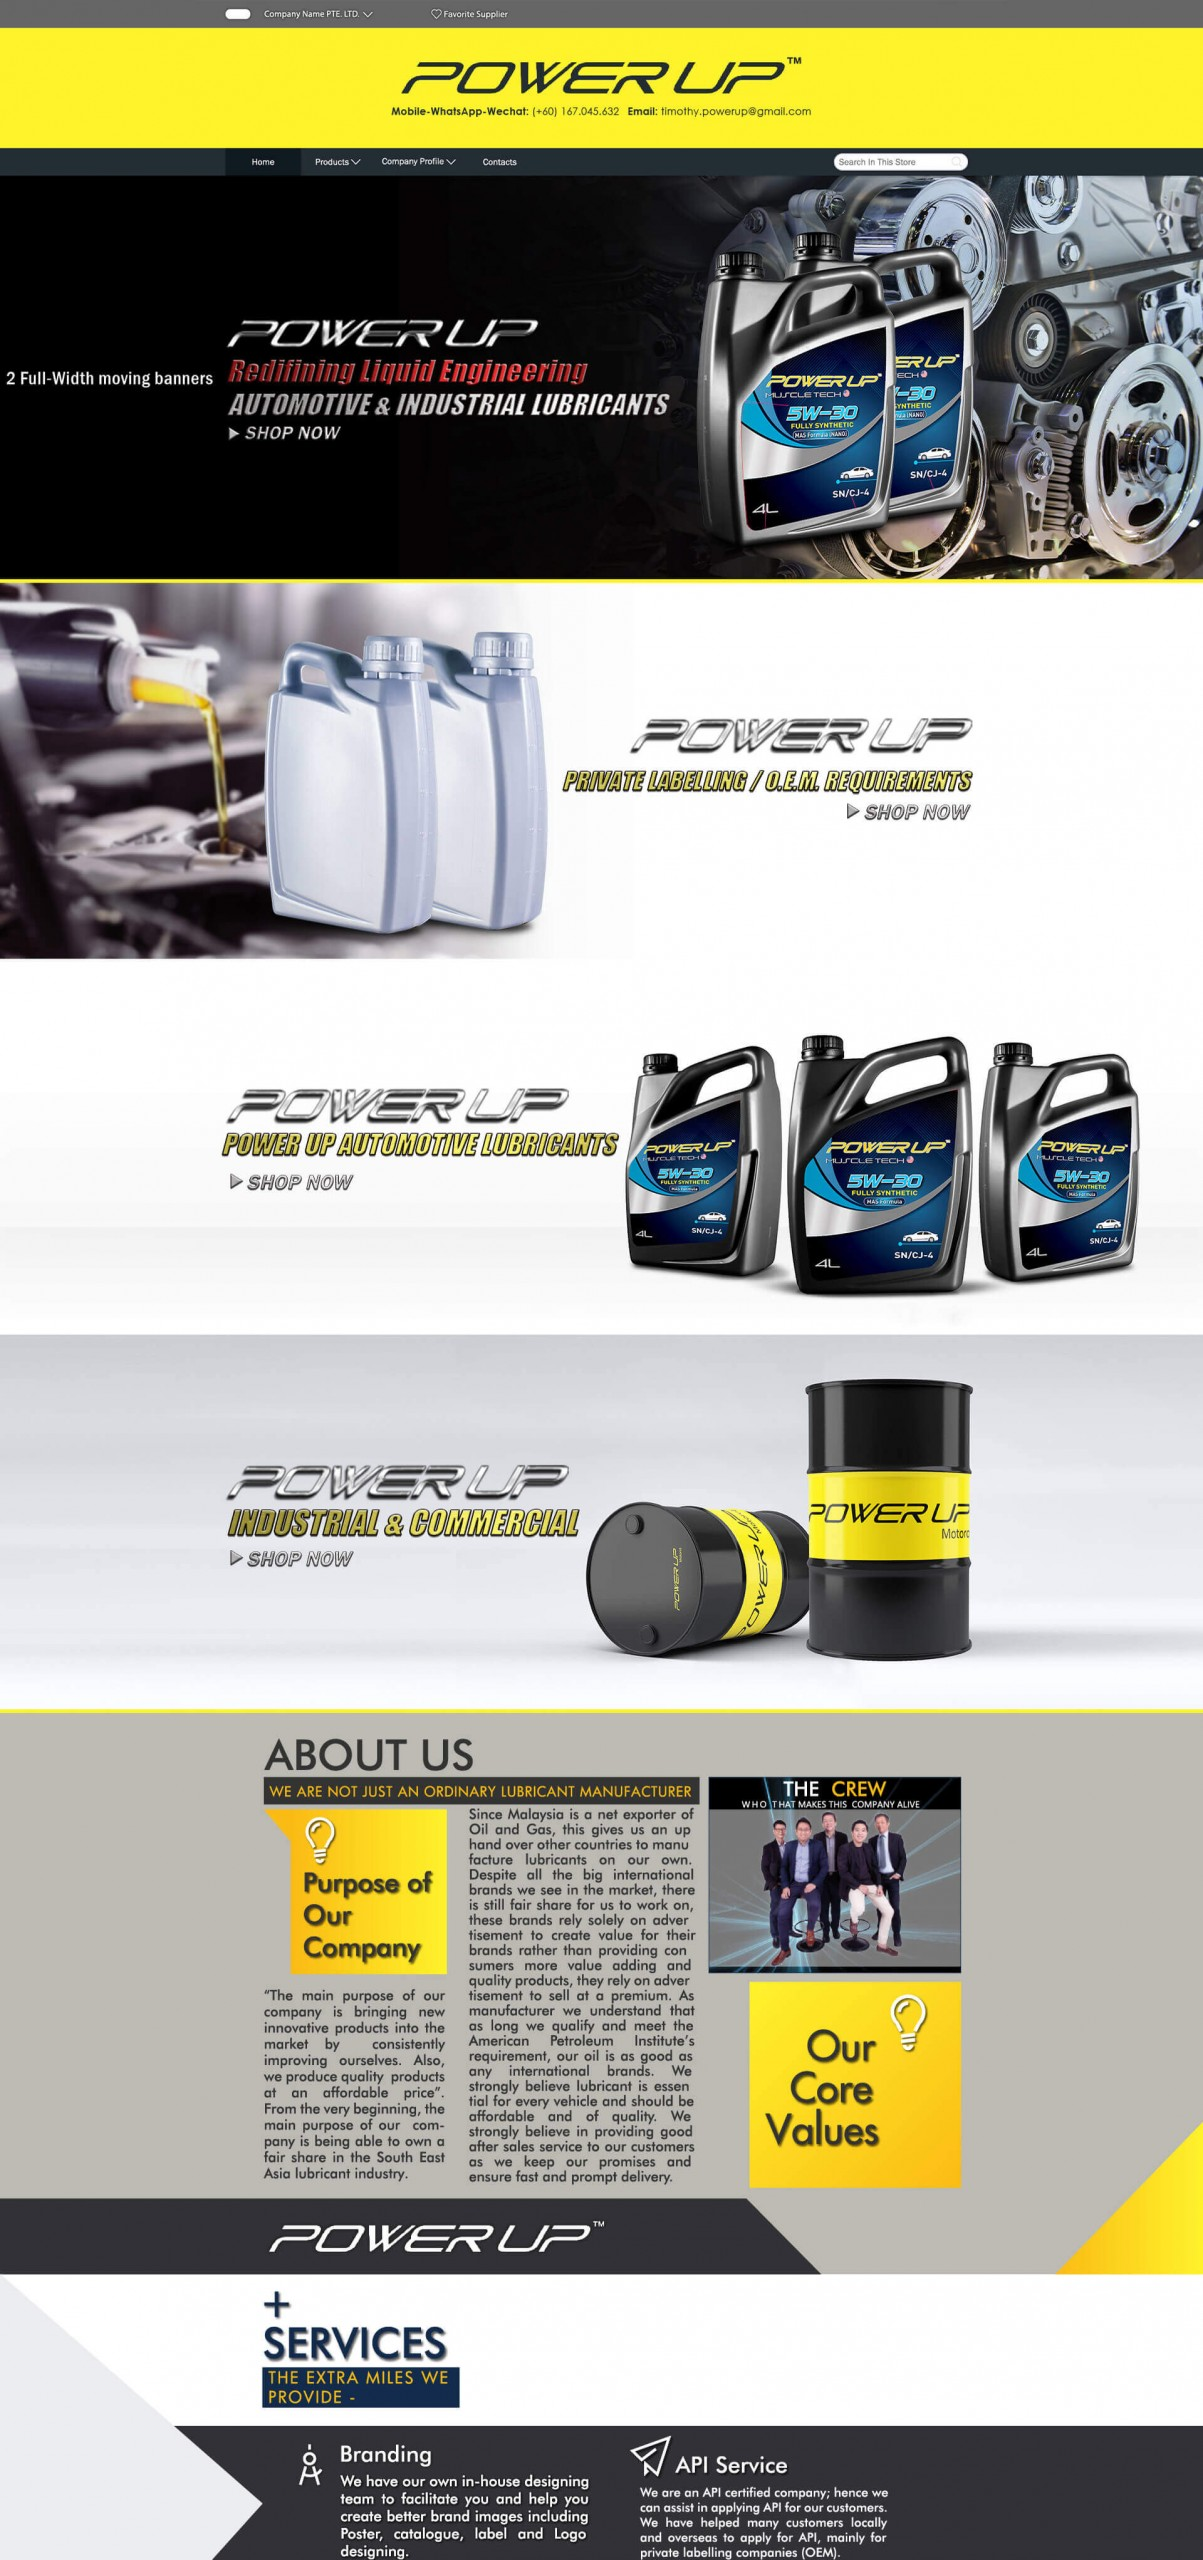 Power Excel Lubricants Sdn Bhd